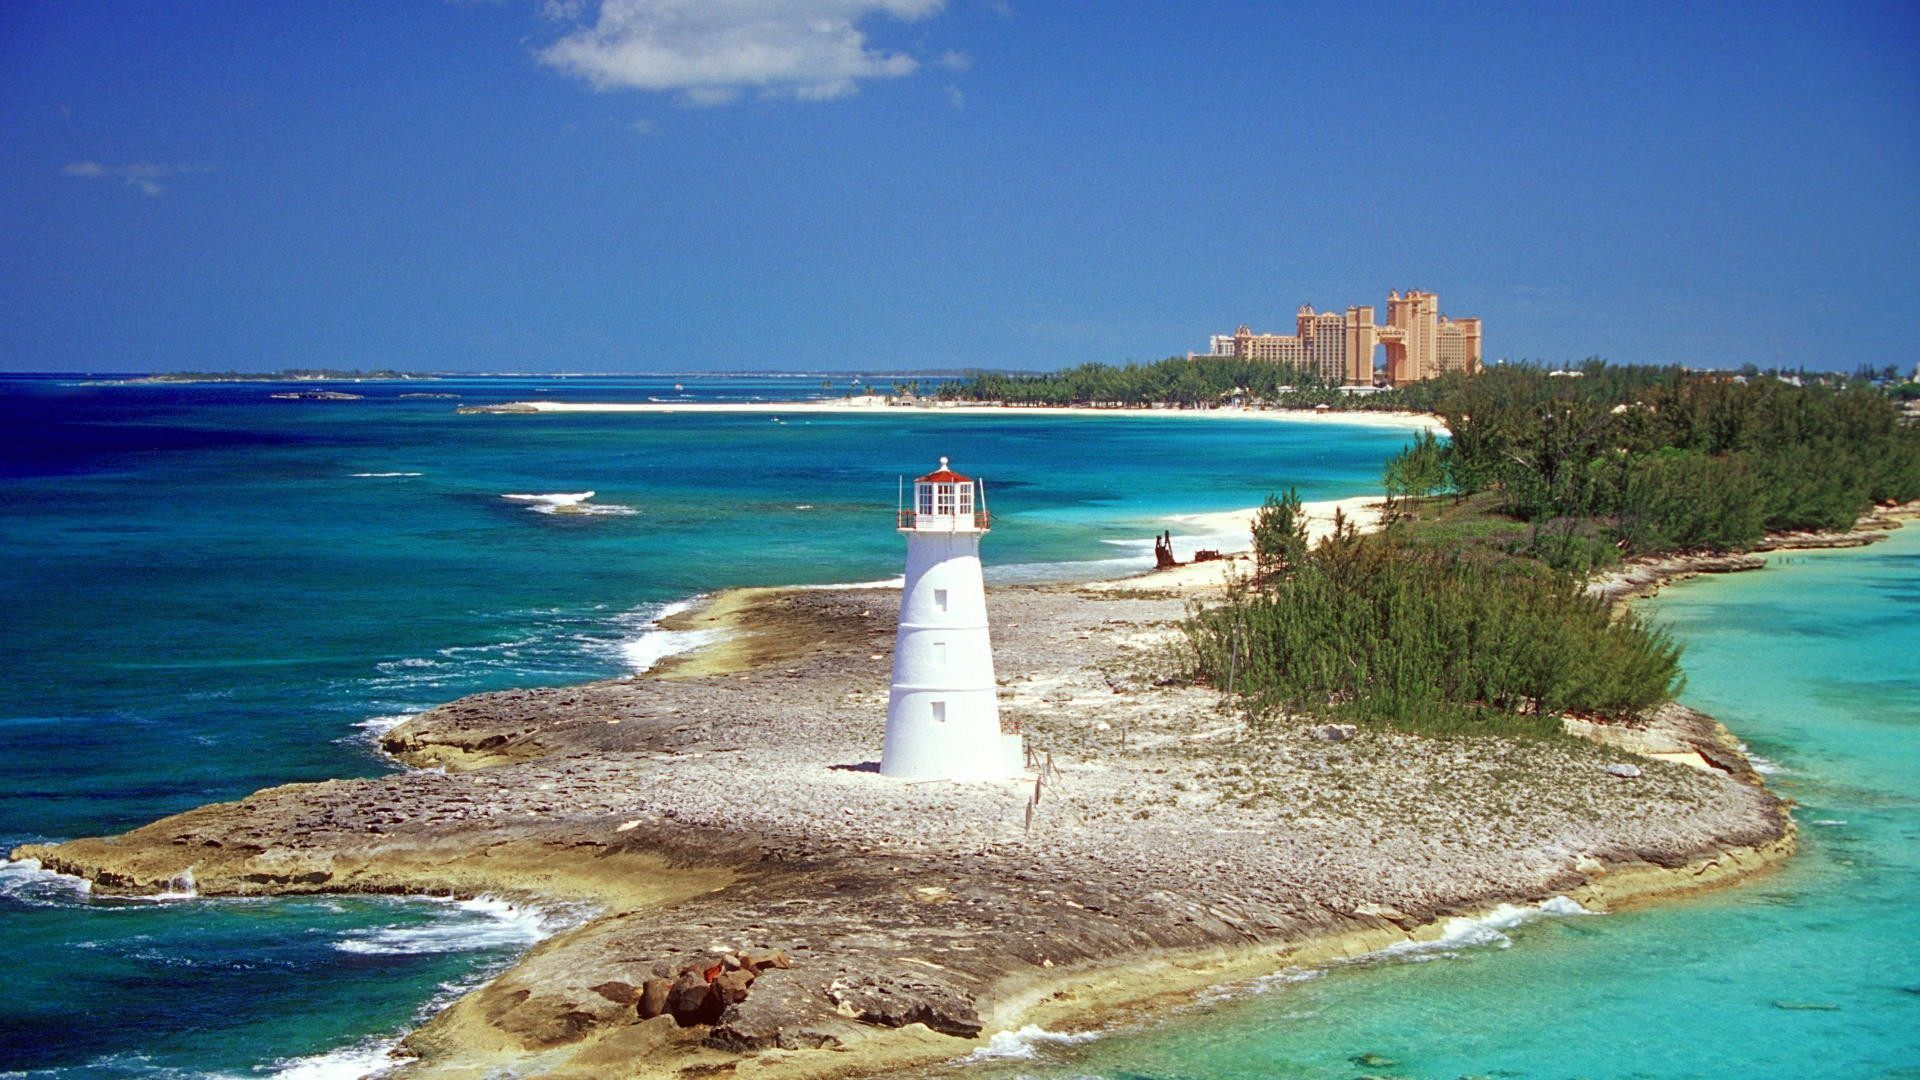 Bahamas background picture hd